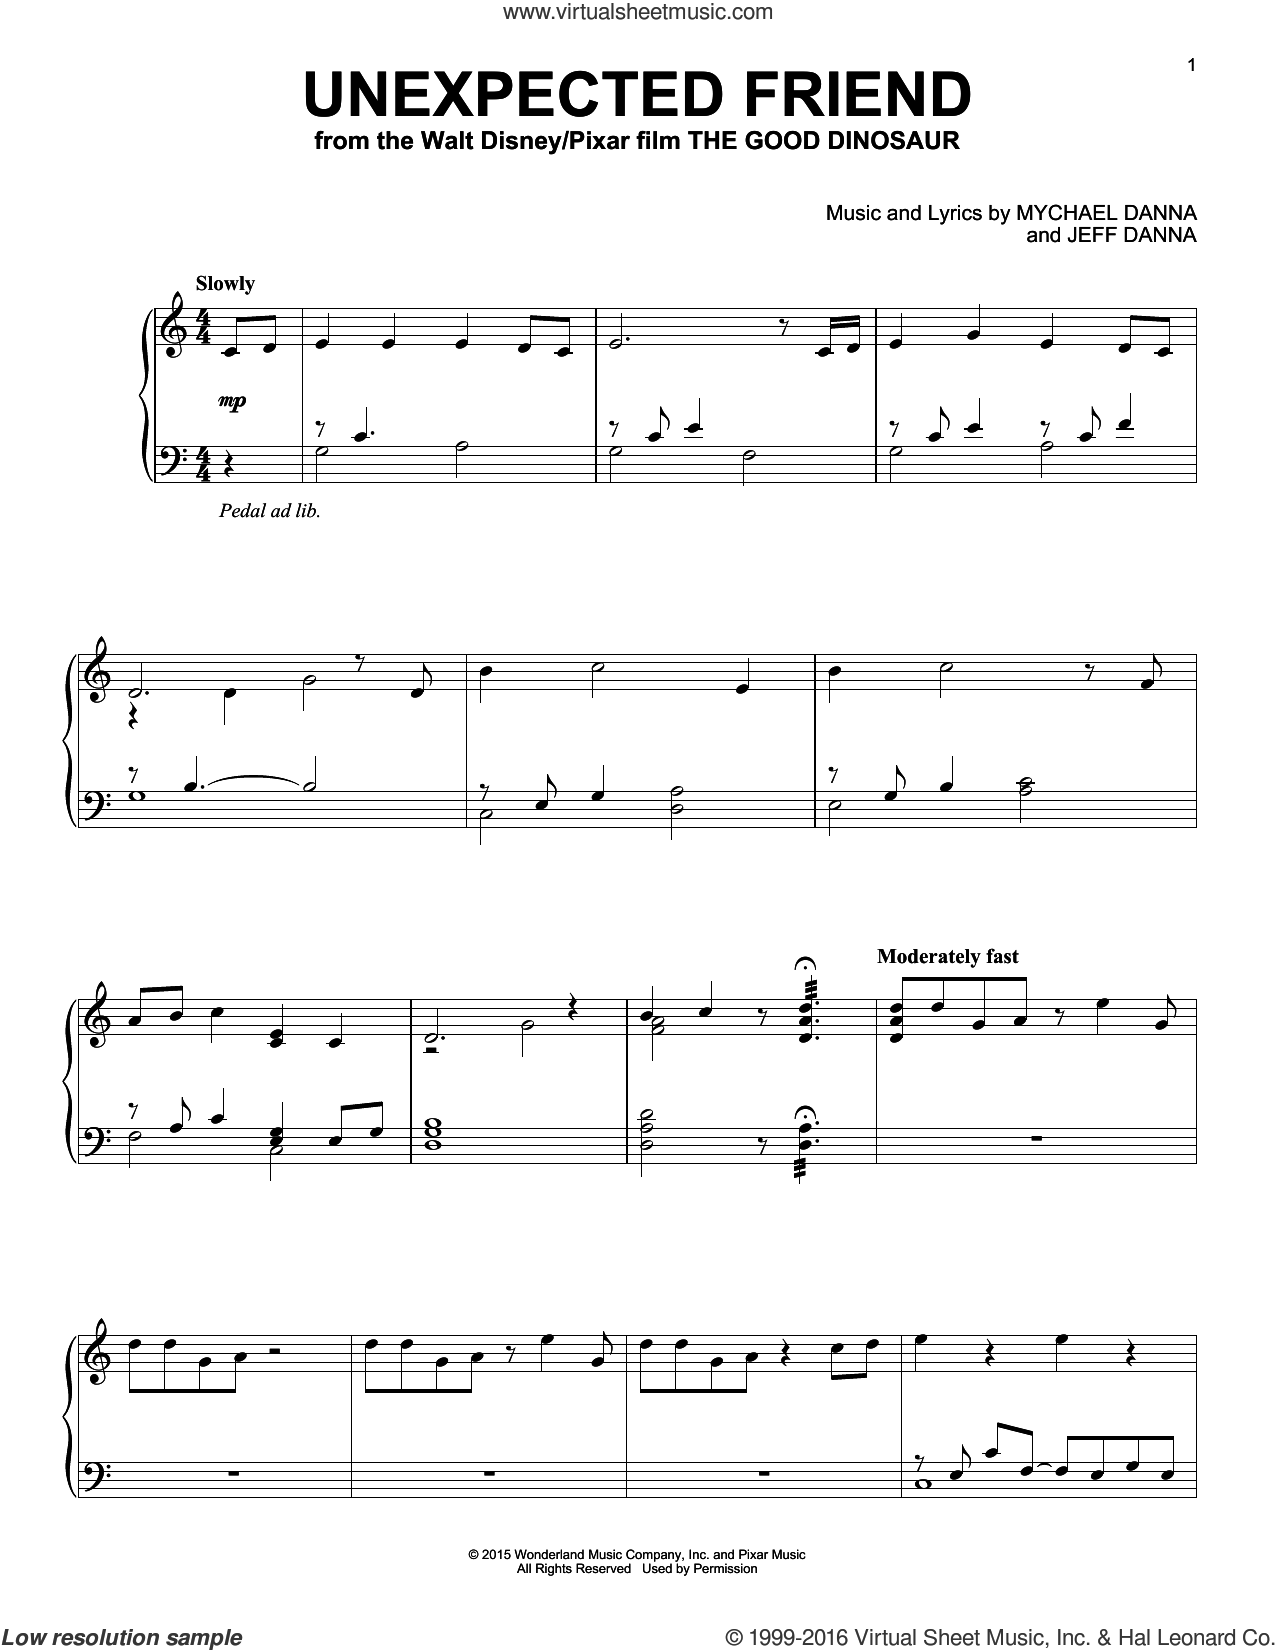 Unexpected Friend sheet music for piano solo by Mychael Danna, Mychael & Jeff Danna and Jeff Danna. Score Image Preview.